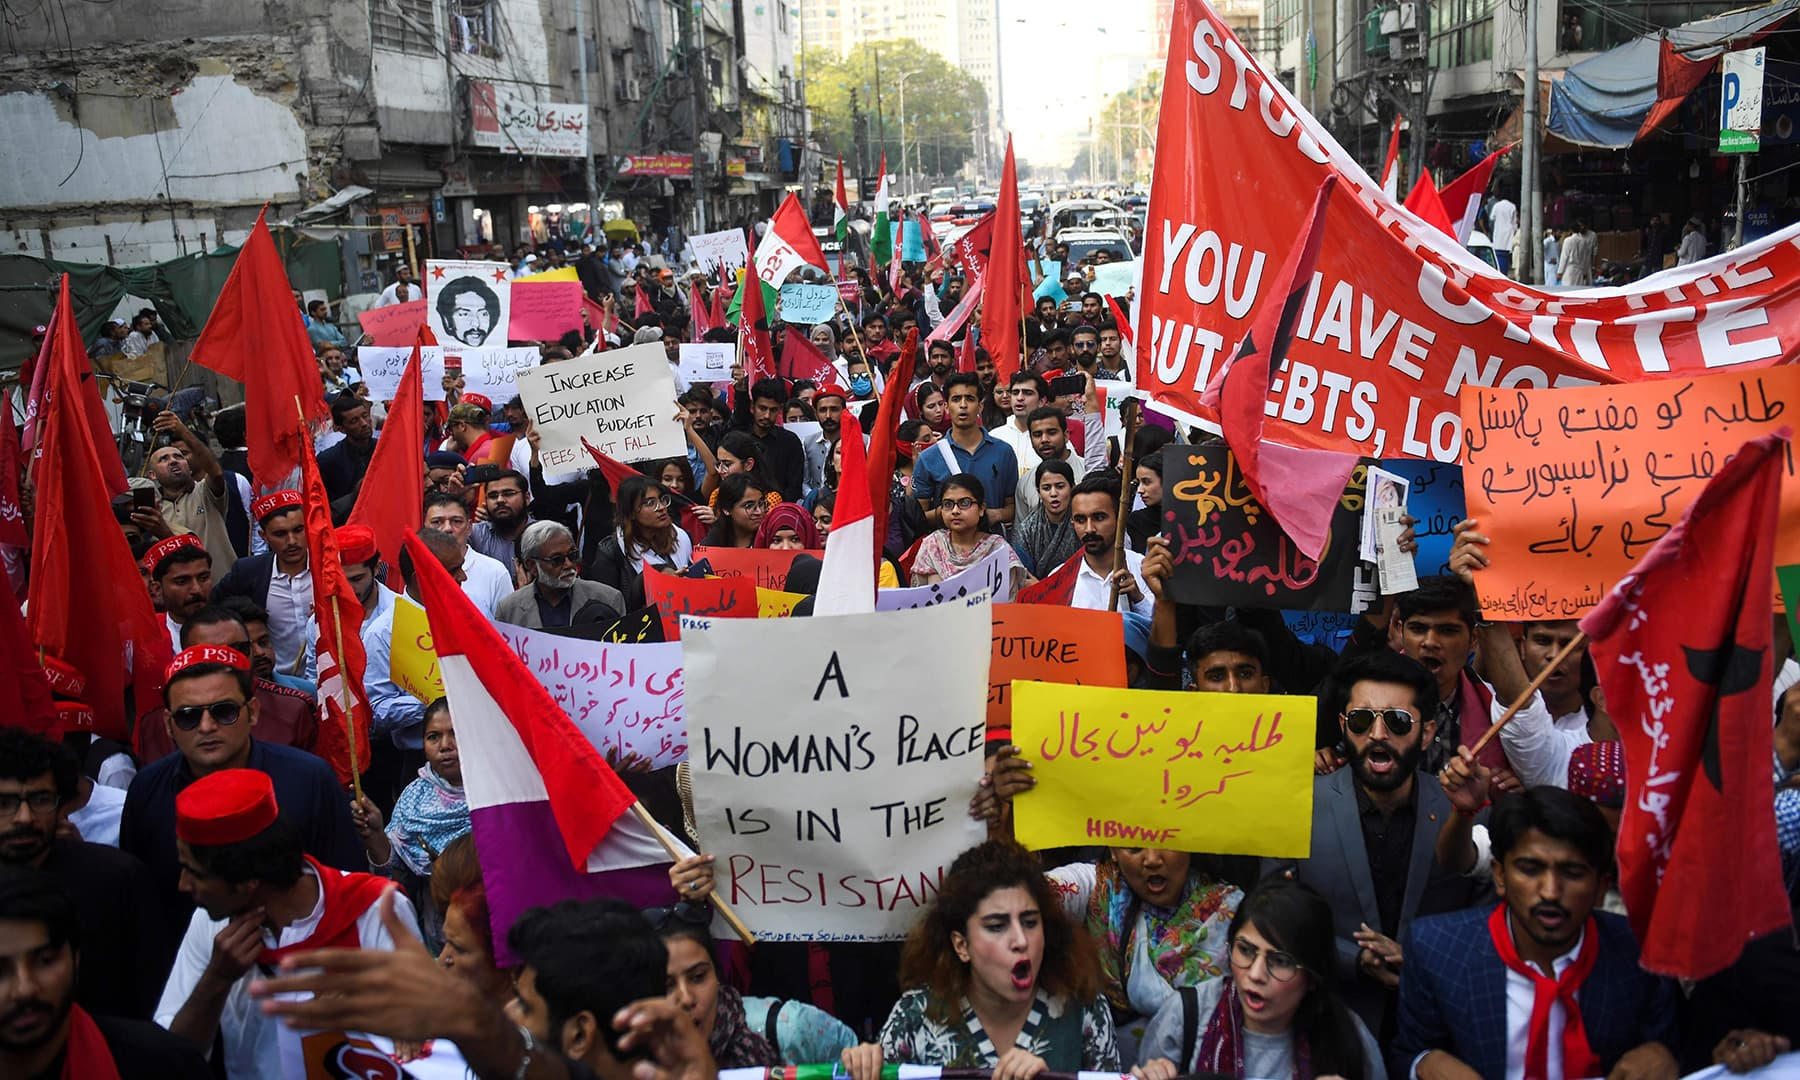 The streets of Karachi turned red with communist posters and flags in the protest march on Friday. — AFP